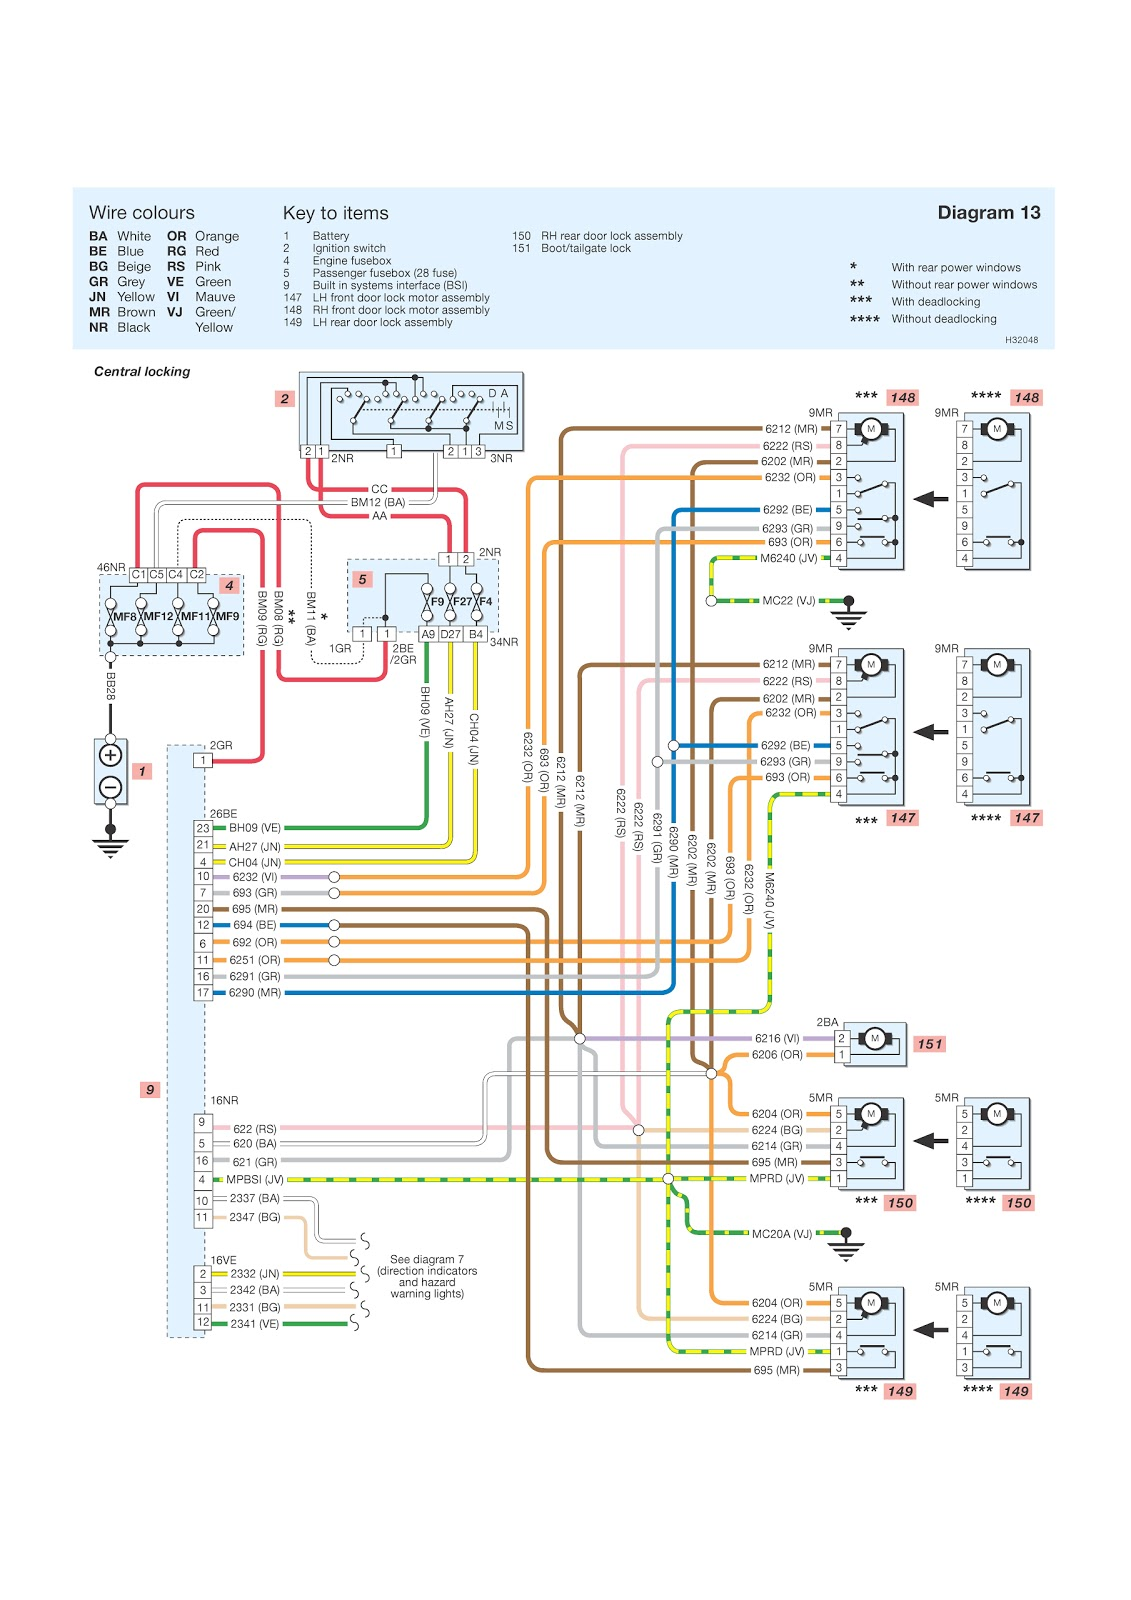 Peugeot 307 Wiring Diagram - Wiring Diagram Data on peugeot 307 owner's manual, peugeot 307 fuse diagram, peugeot 508 wiring diagram, peugeot 505 wiring diagram,